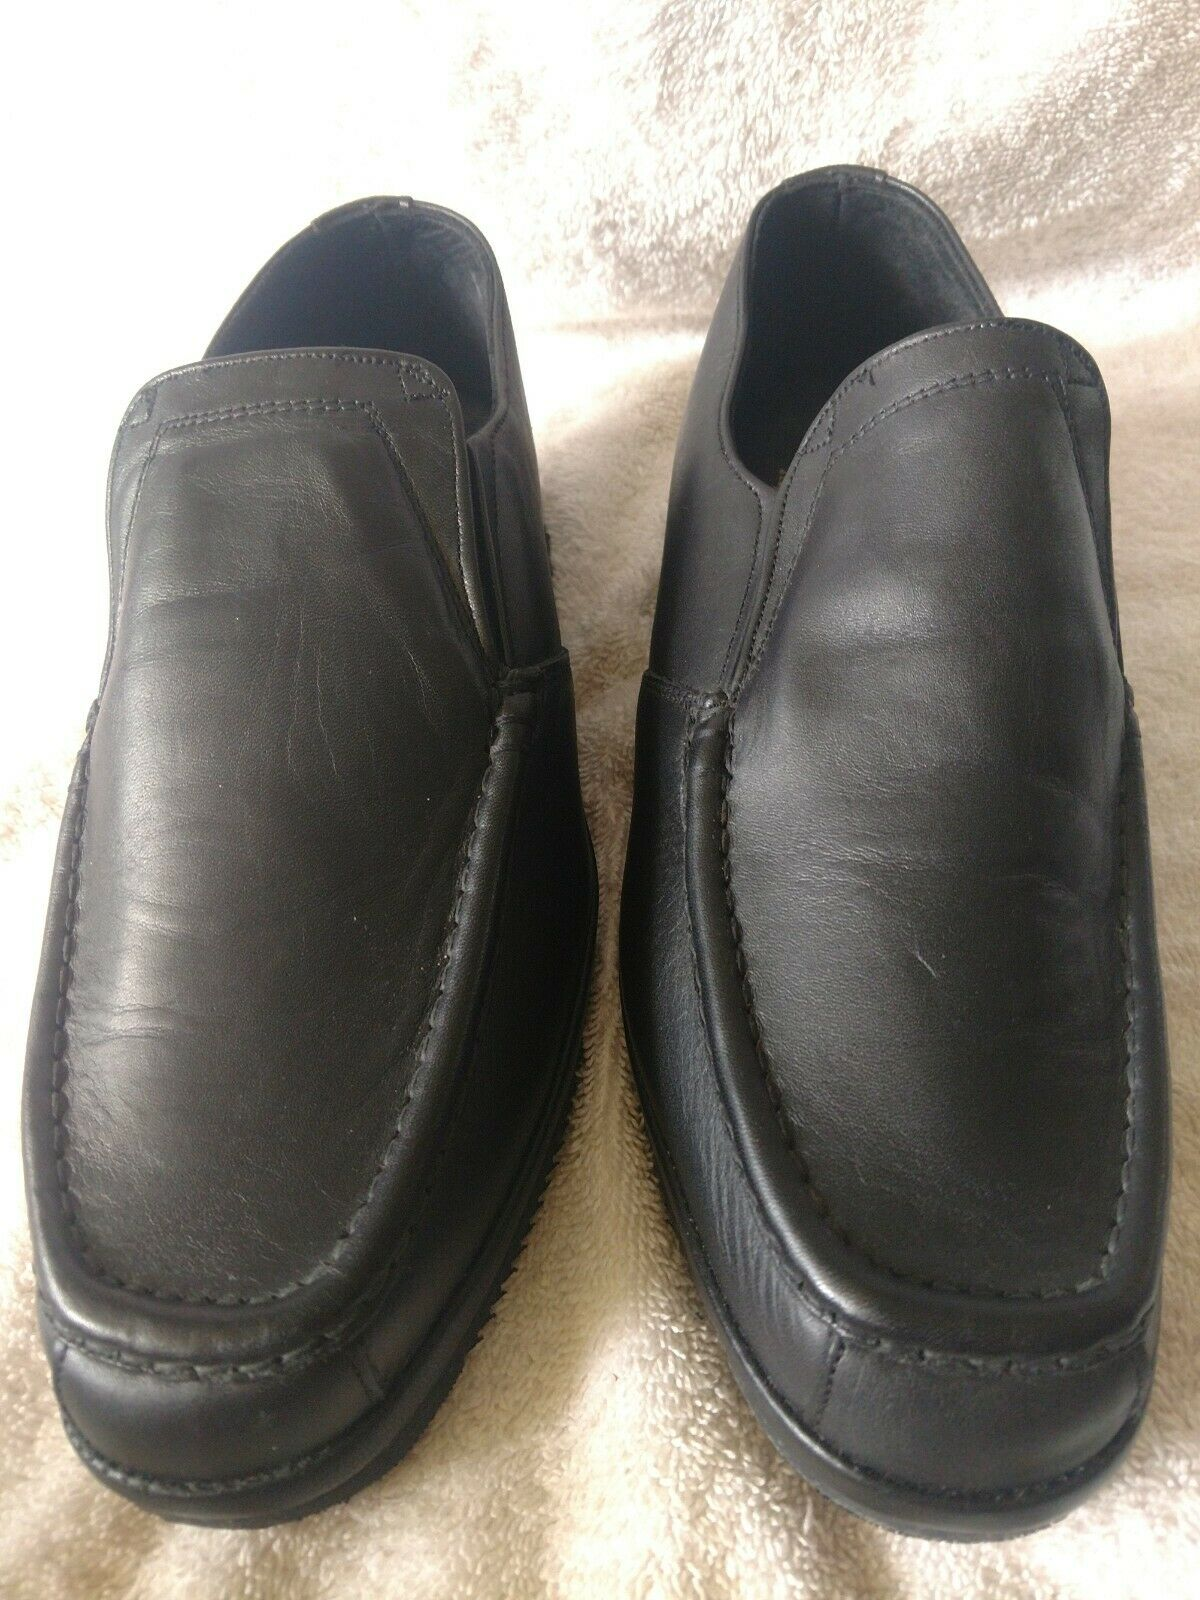 MEN'S JOHNSTON & MURPHY BLACK LEATHER SLIP-ON LOAFERS SIZE 8 W GREAT CONDITION